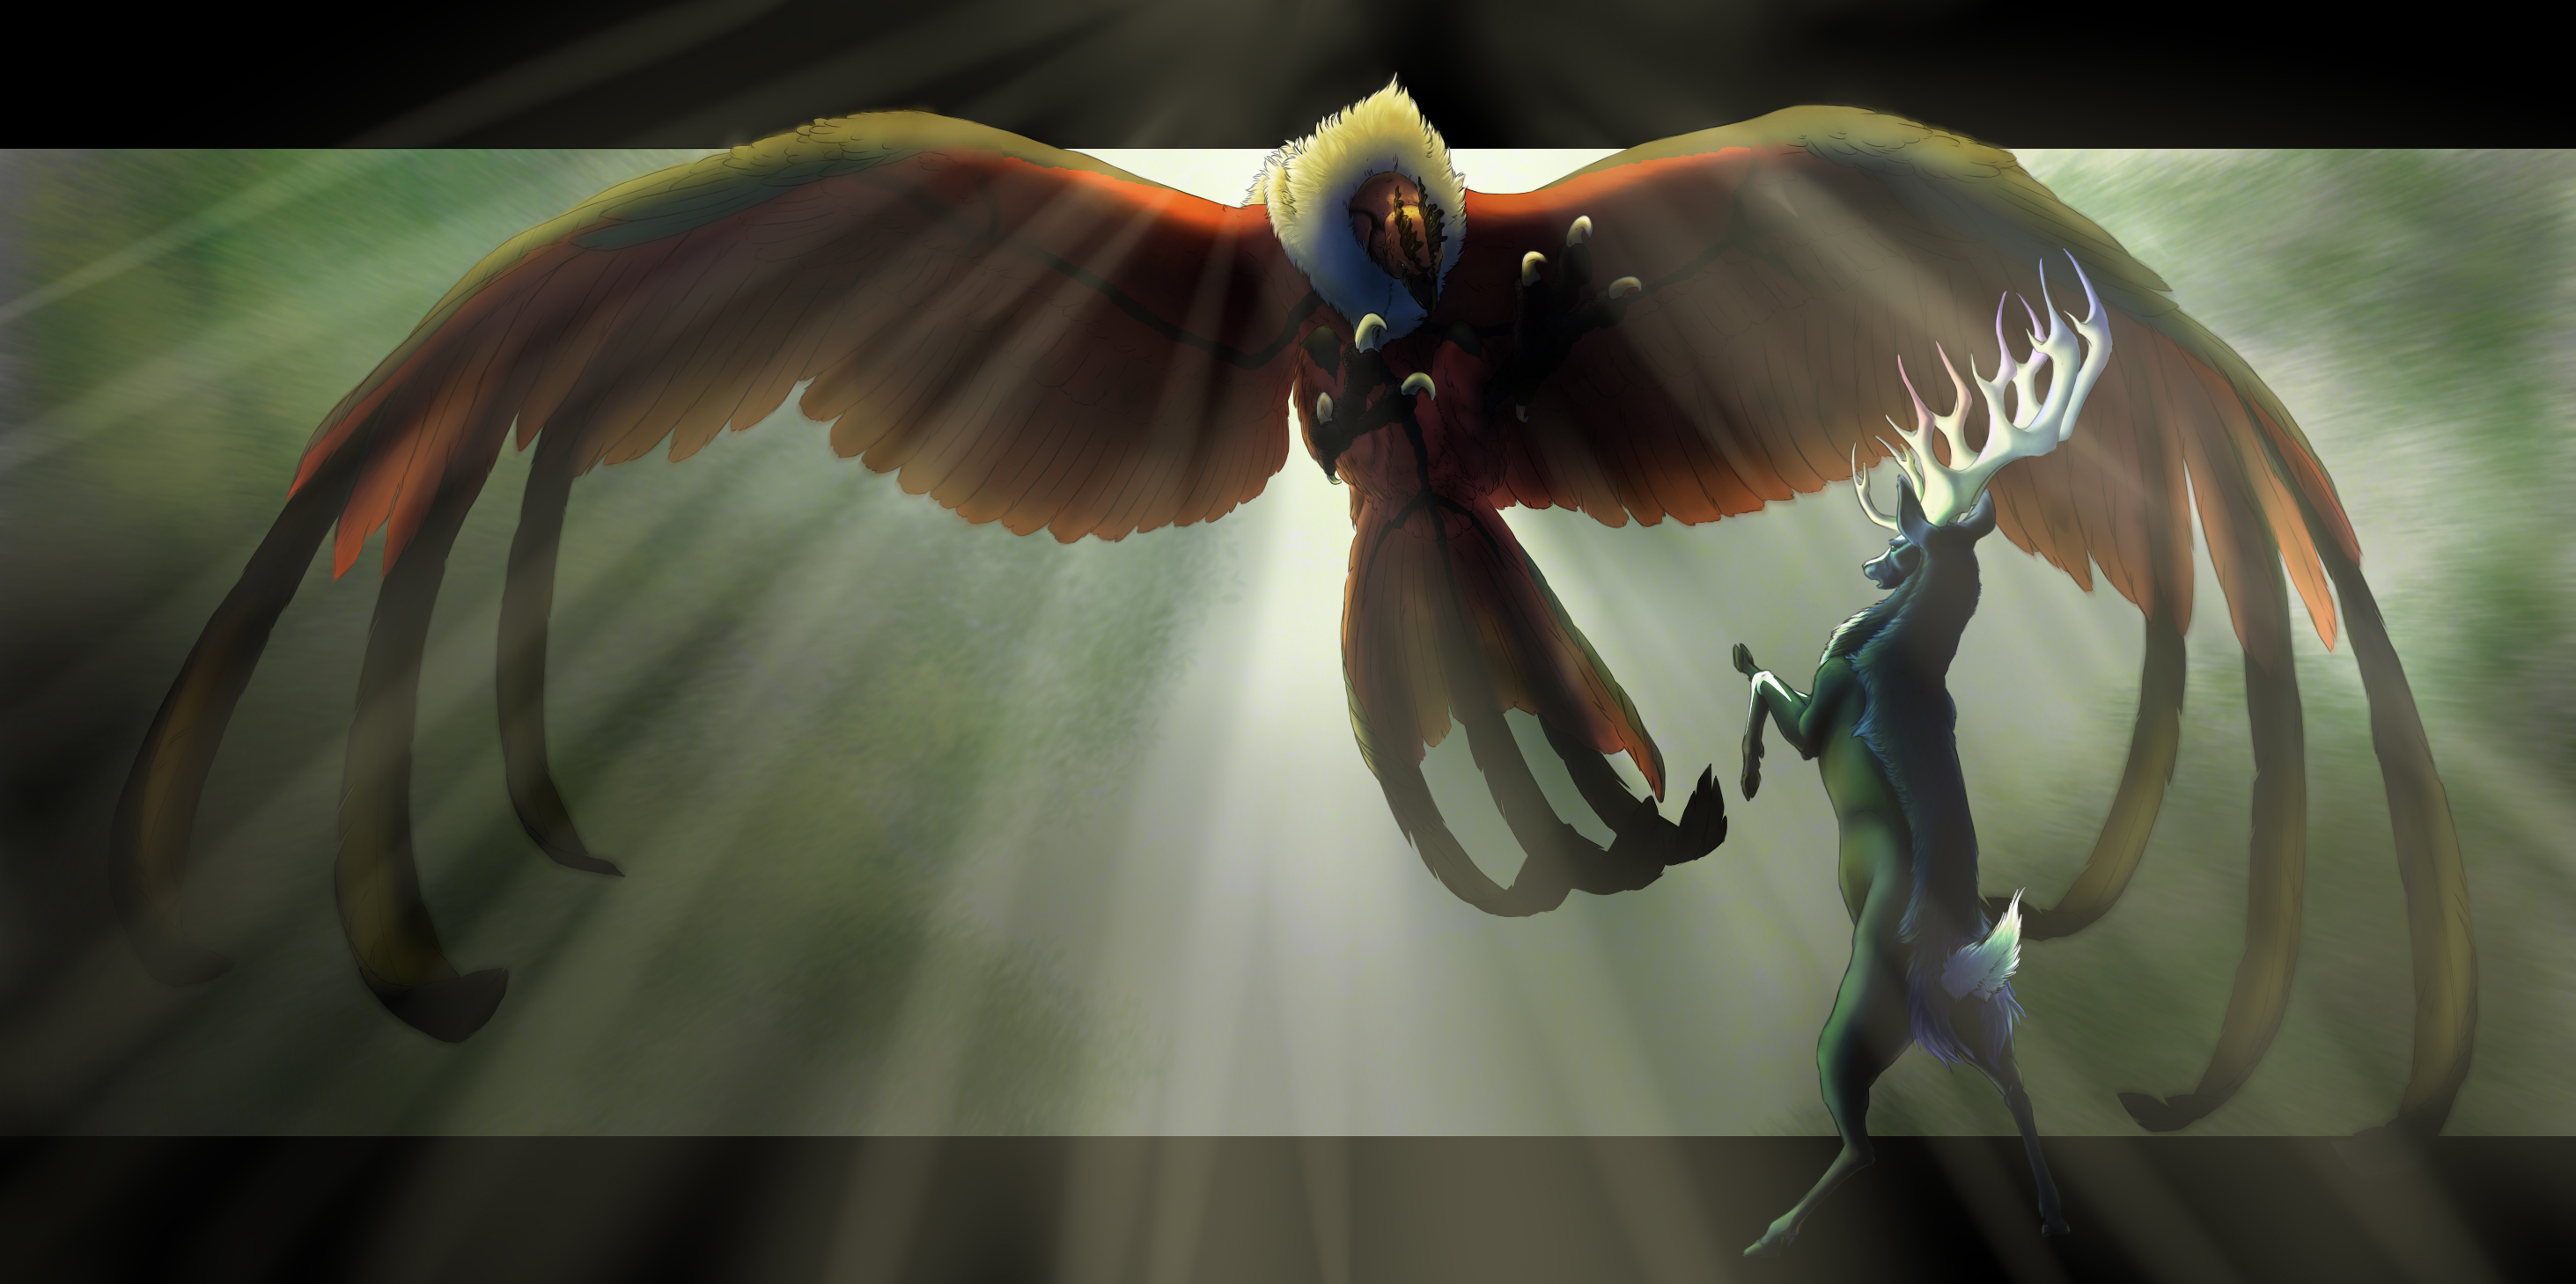 Yveltal and Xerneas by finiens on DeviantArt